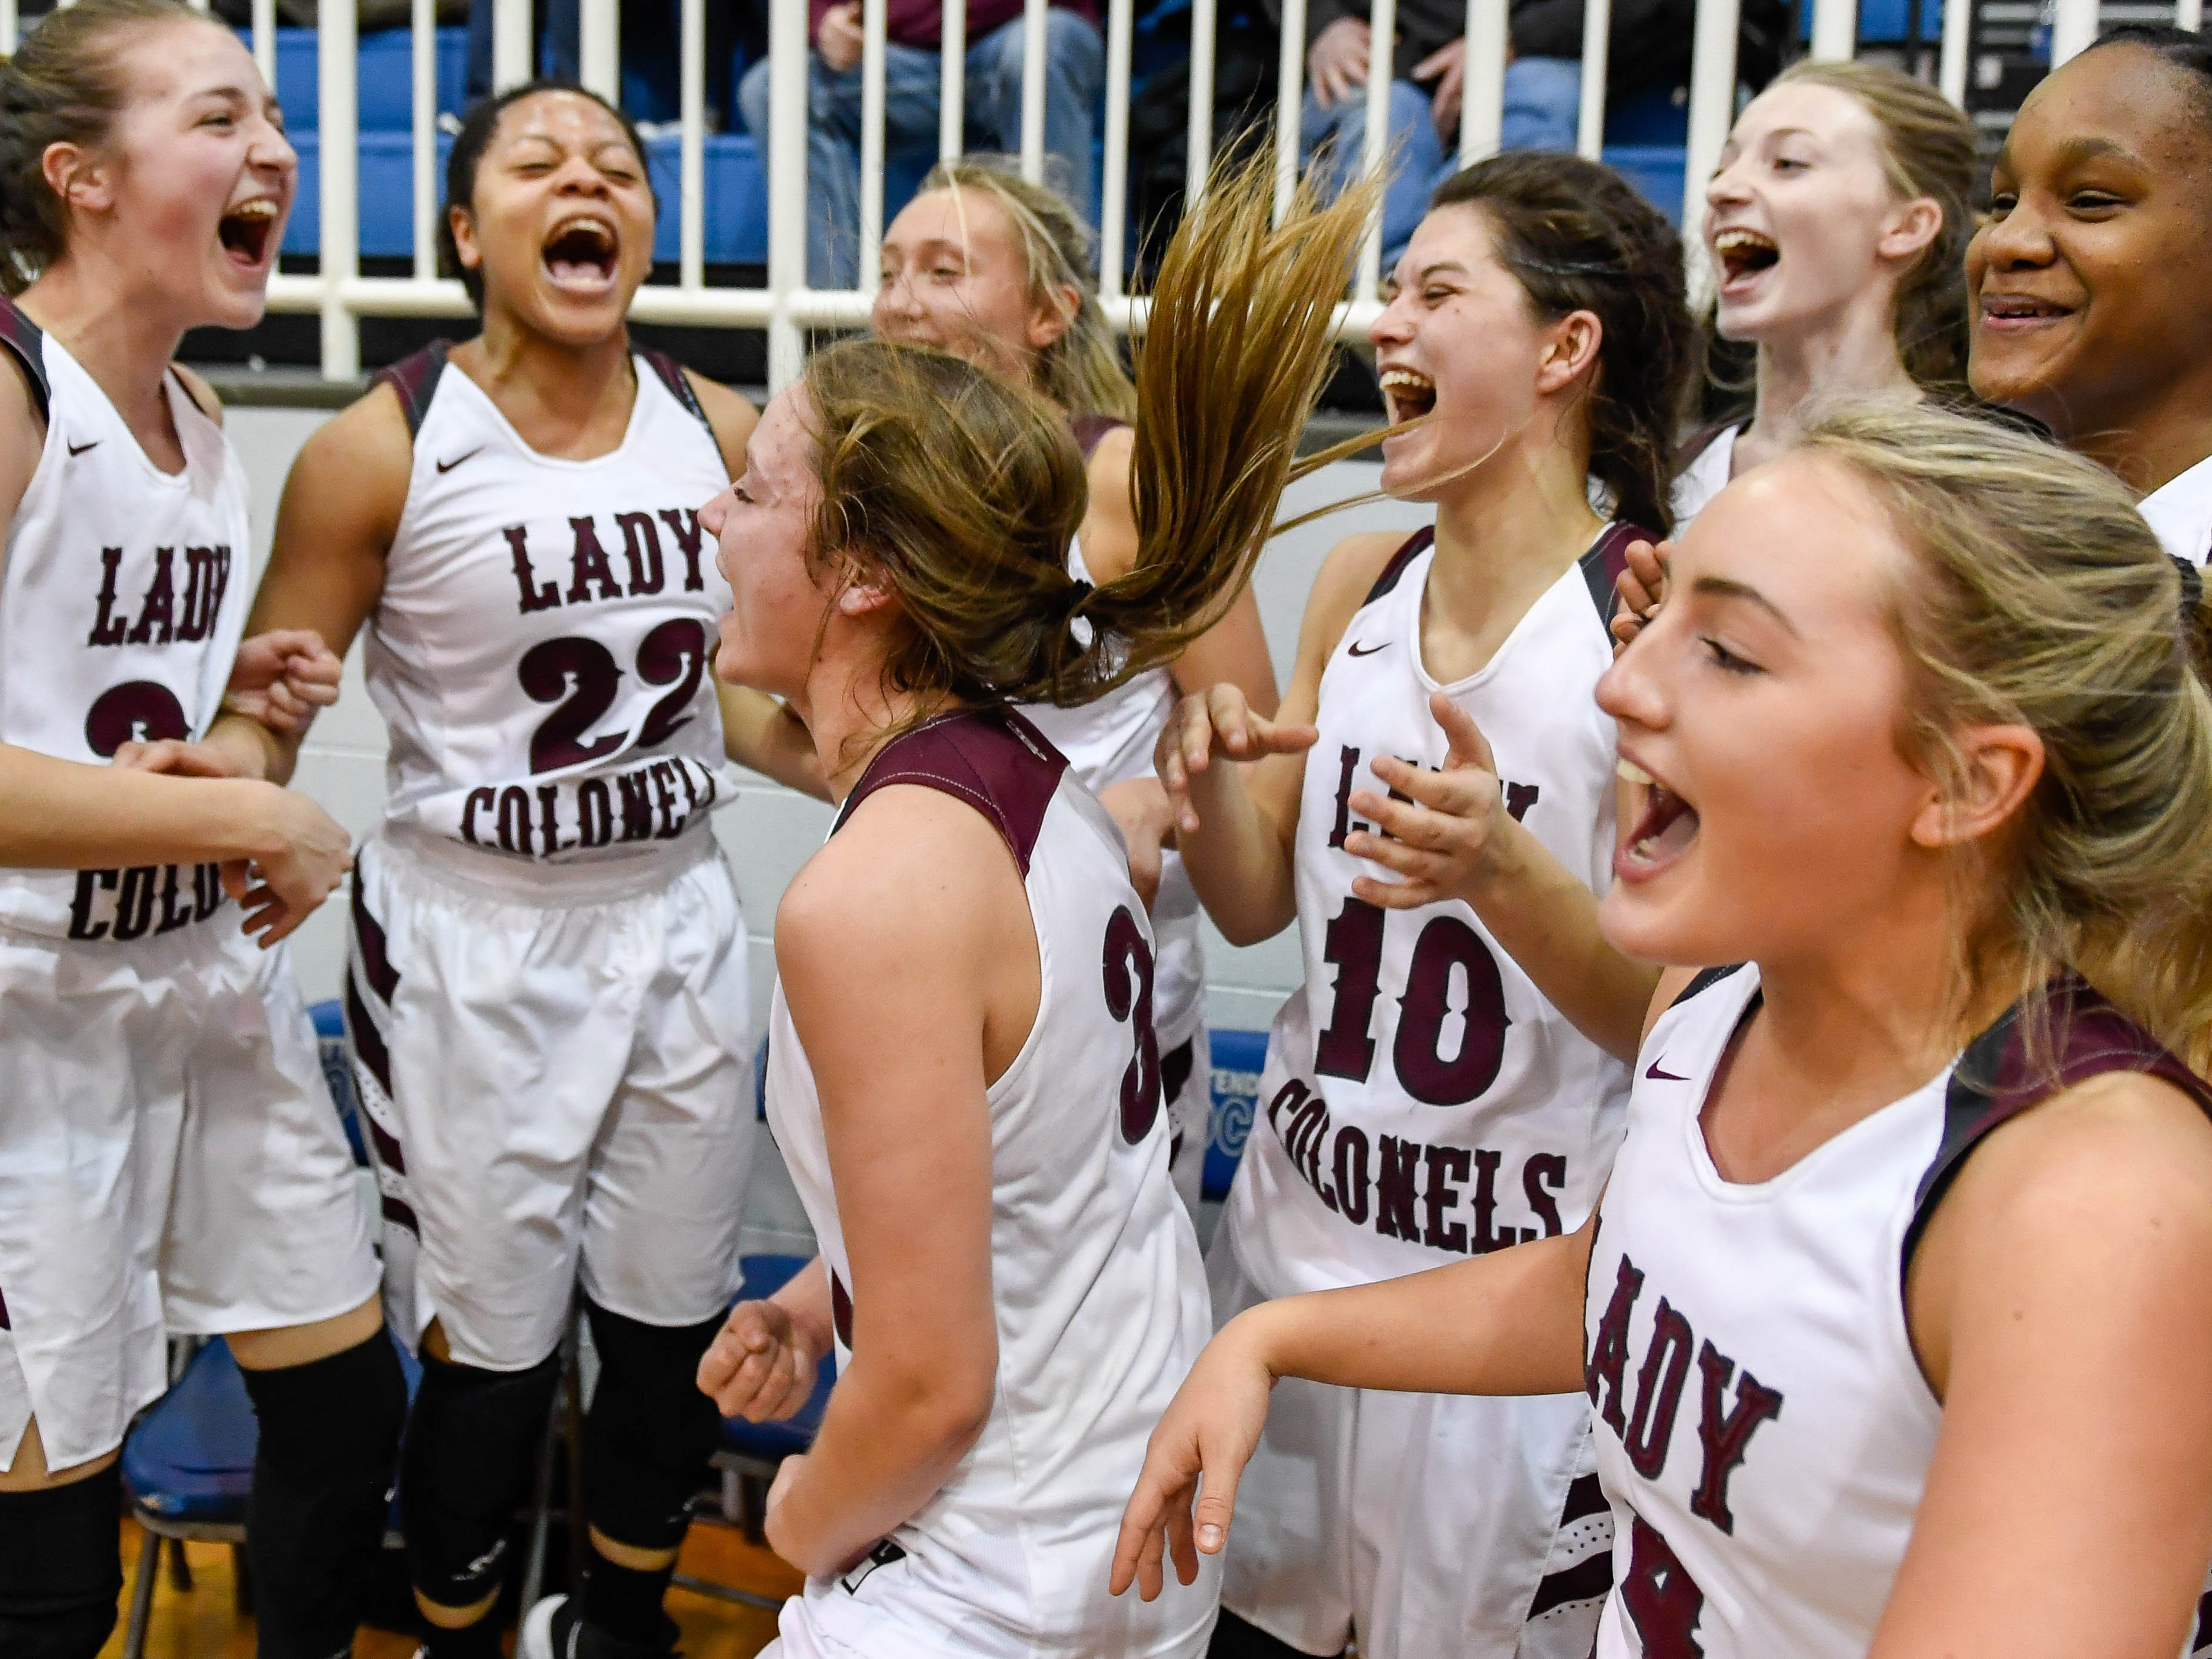 The Henderson County Colonels celebrate their victory over the Webster County Lady Trojans in the Girls Second Region Championship at the Rocket Arena in Marion Tuesday, March 5, 2019.